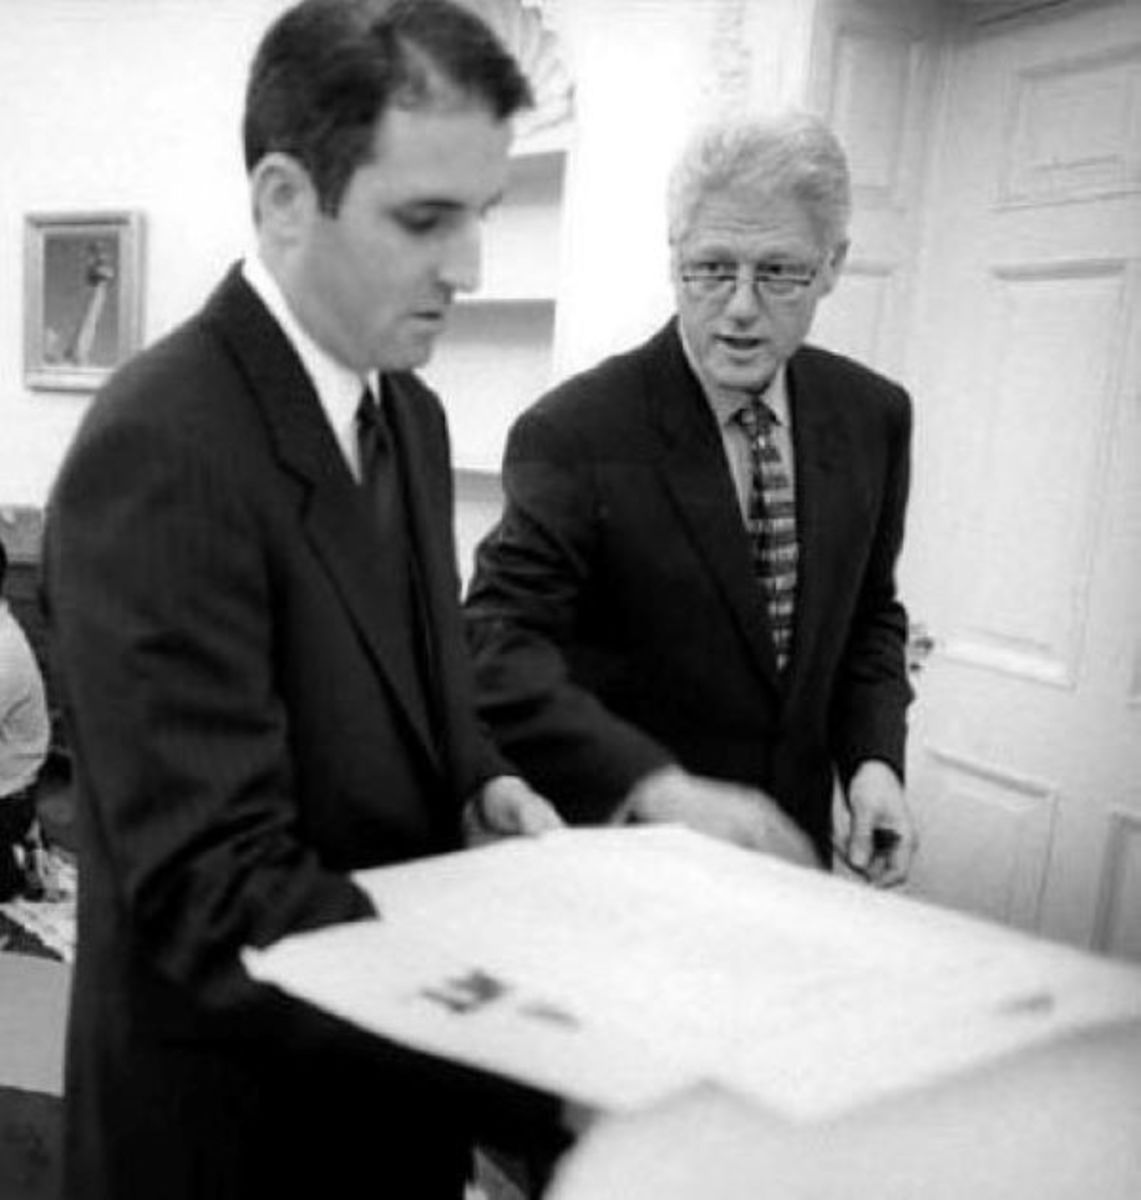 Doug Band and President Clinton, the early years.